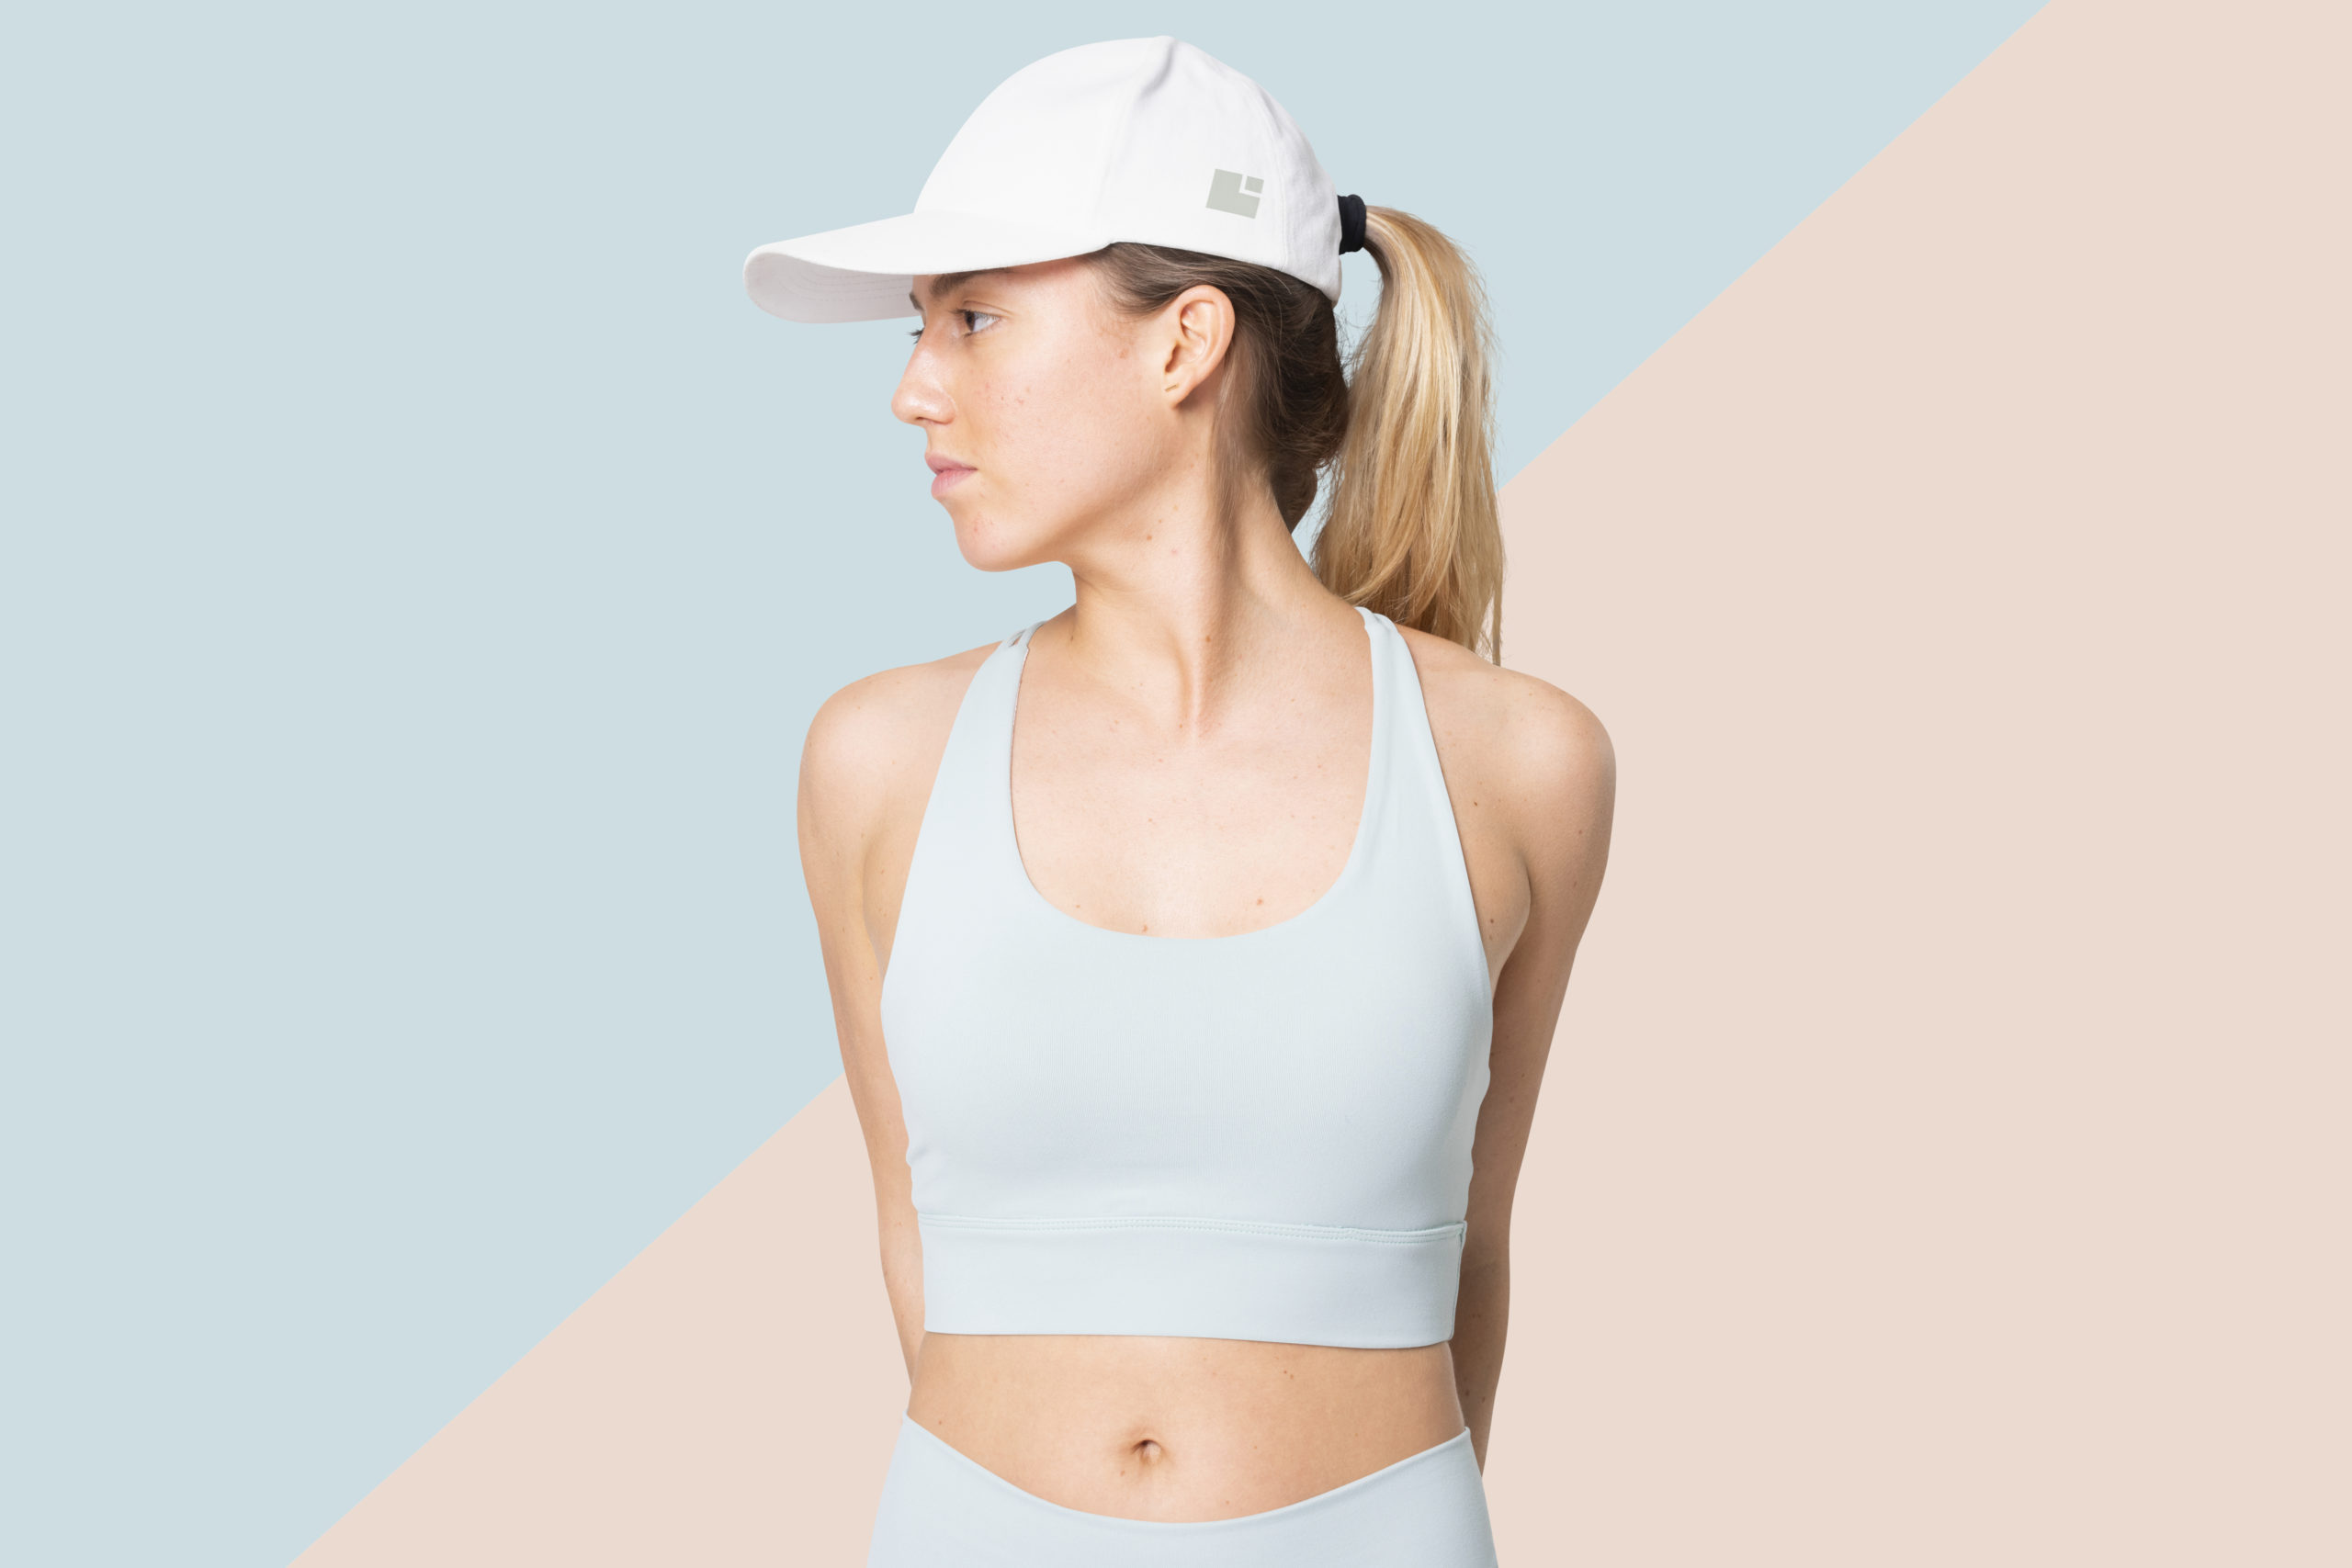 How to Find the Best Padded Sports Bra For Small Chest